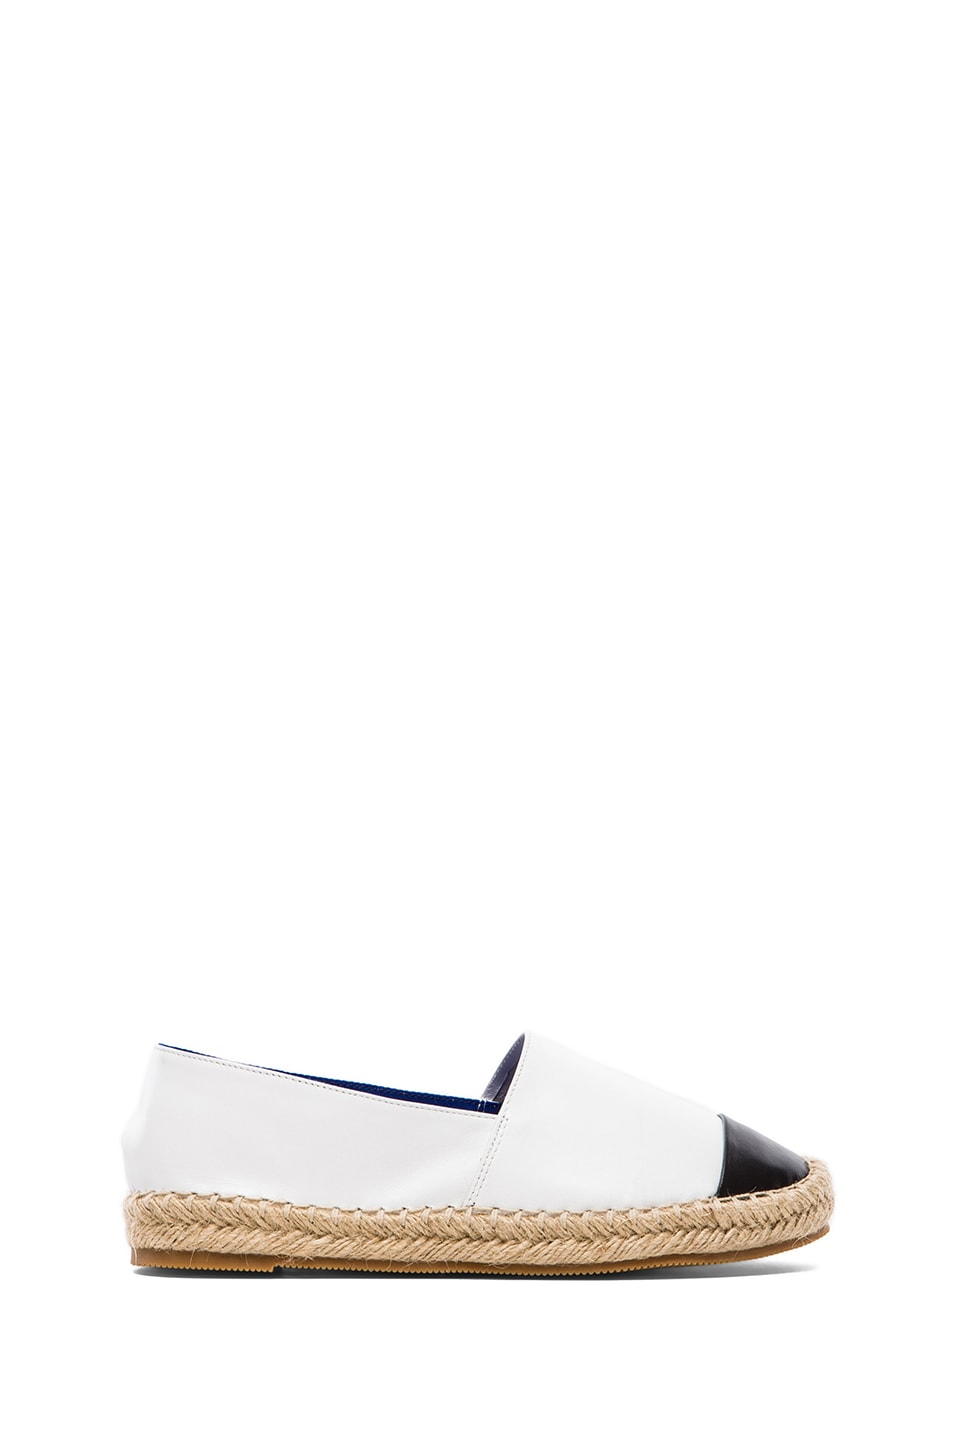 Jeffrey Campbell Atha Loafer in Black & White